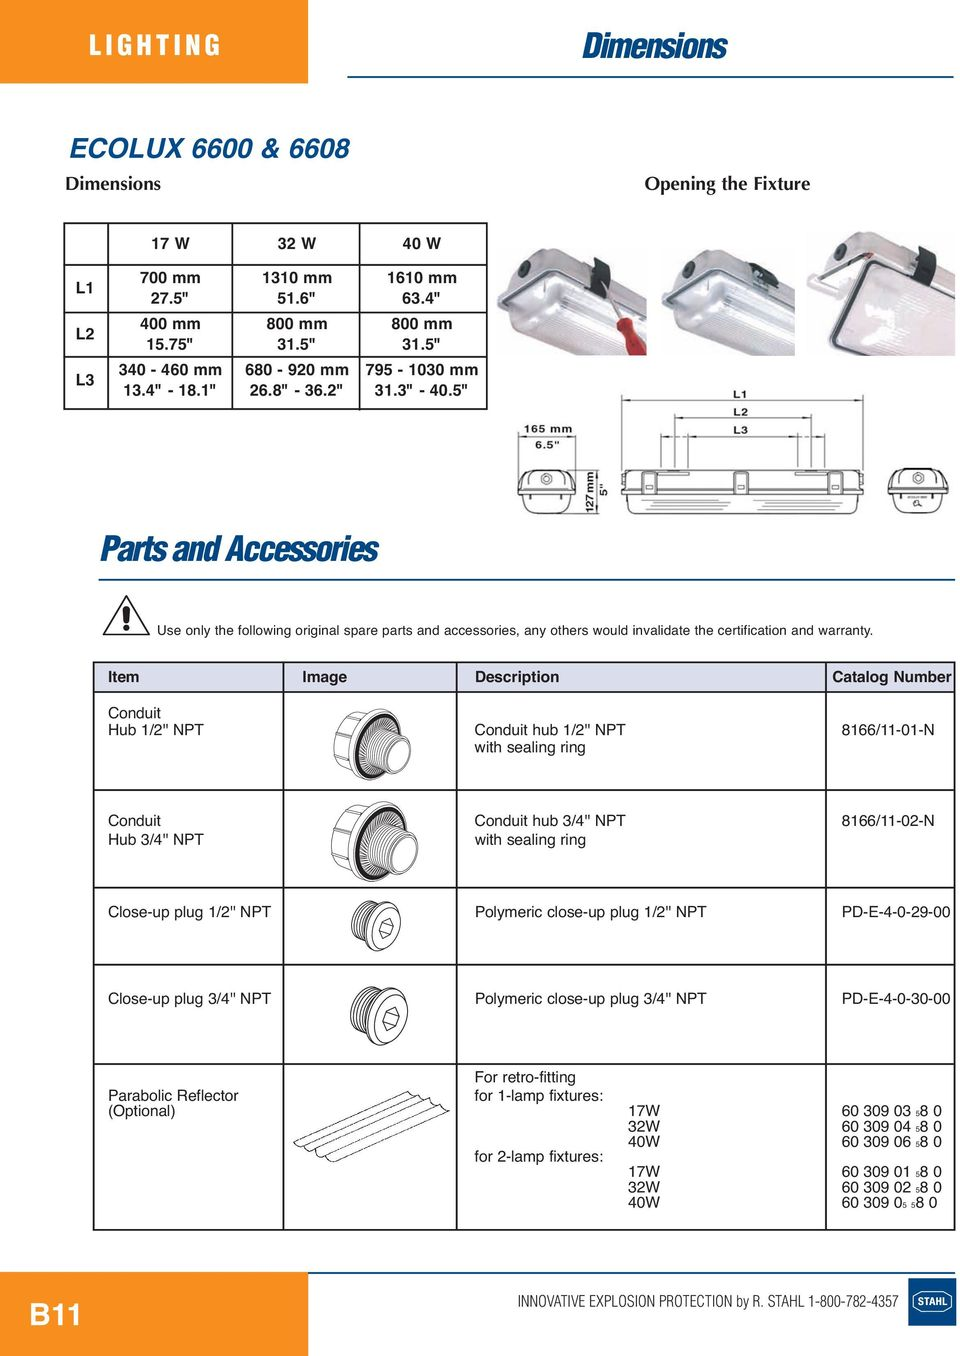 "5"" Parts and Accessories Use only the following original spare parts and accessories, any others would invalidate the certification and warranty."